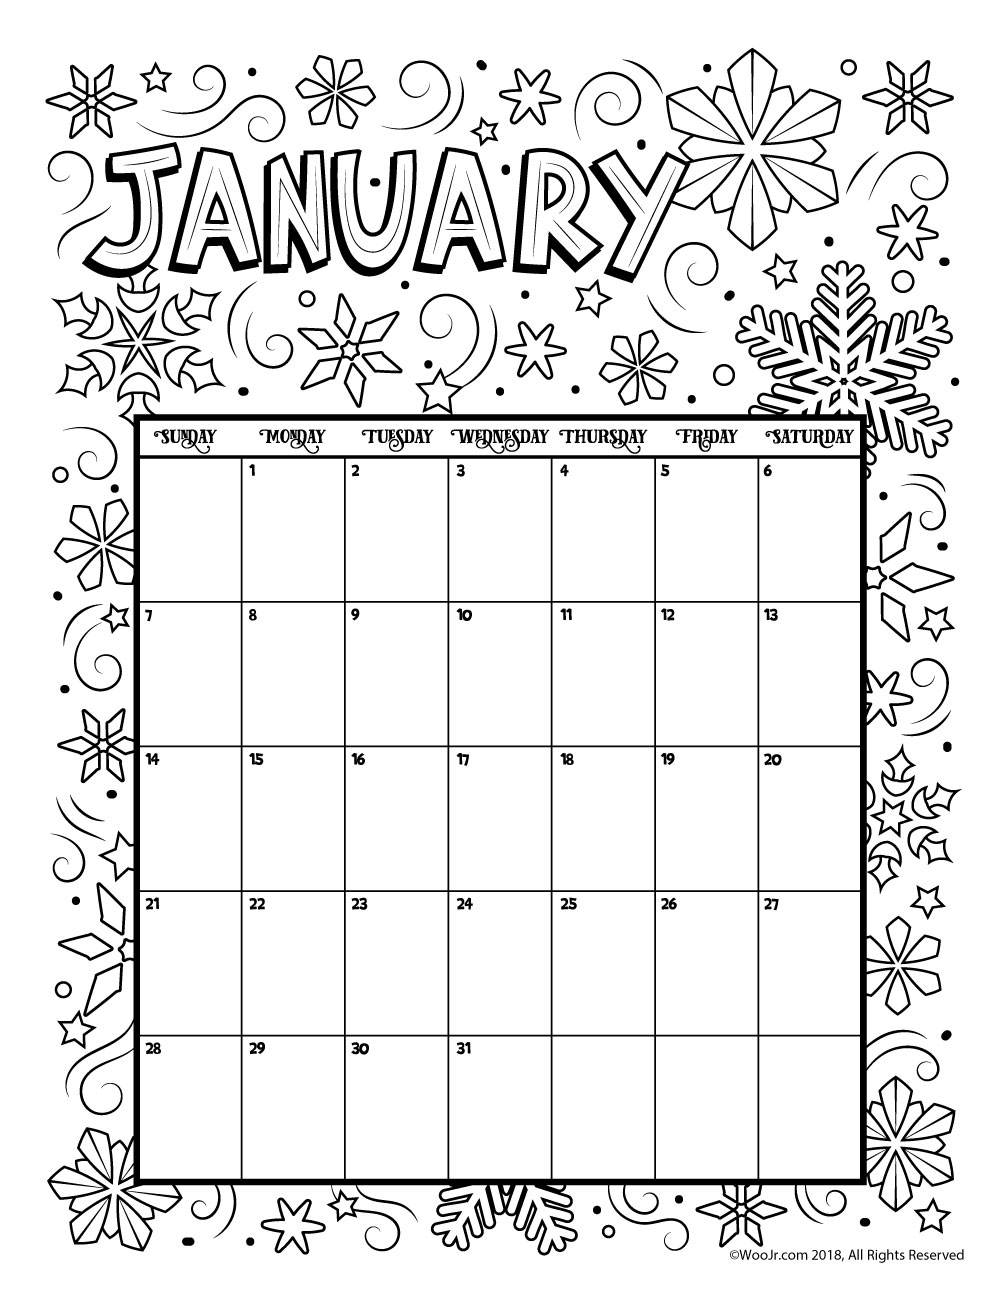 Lovely sample coloring calendar 2018 2019 for Calendar coloring page